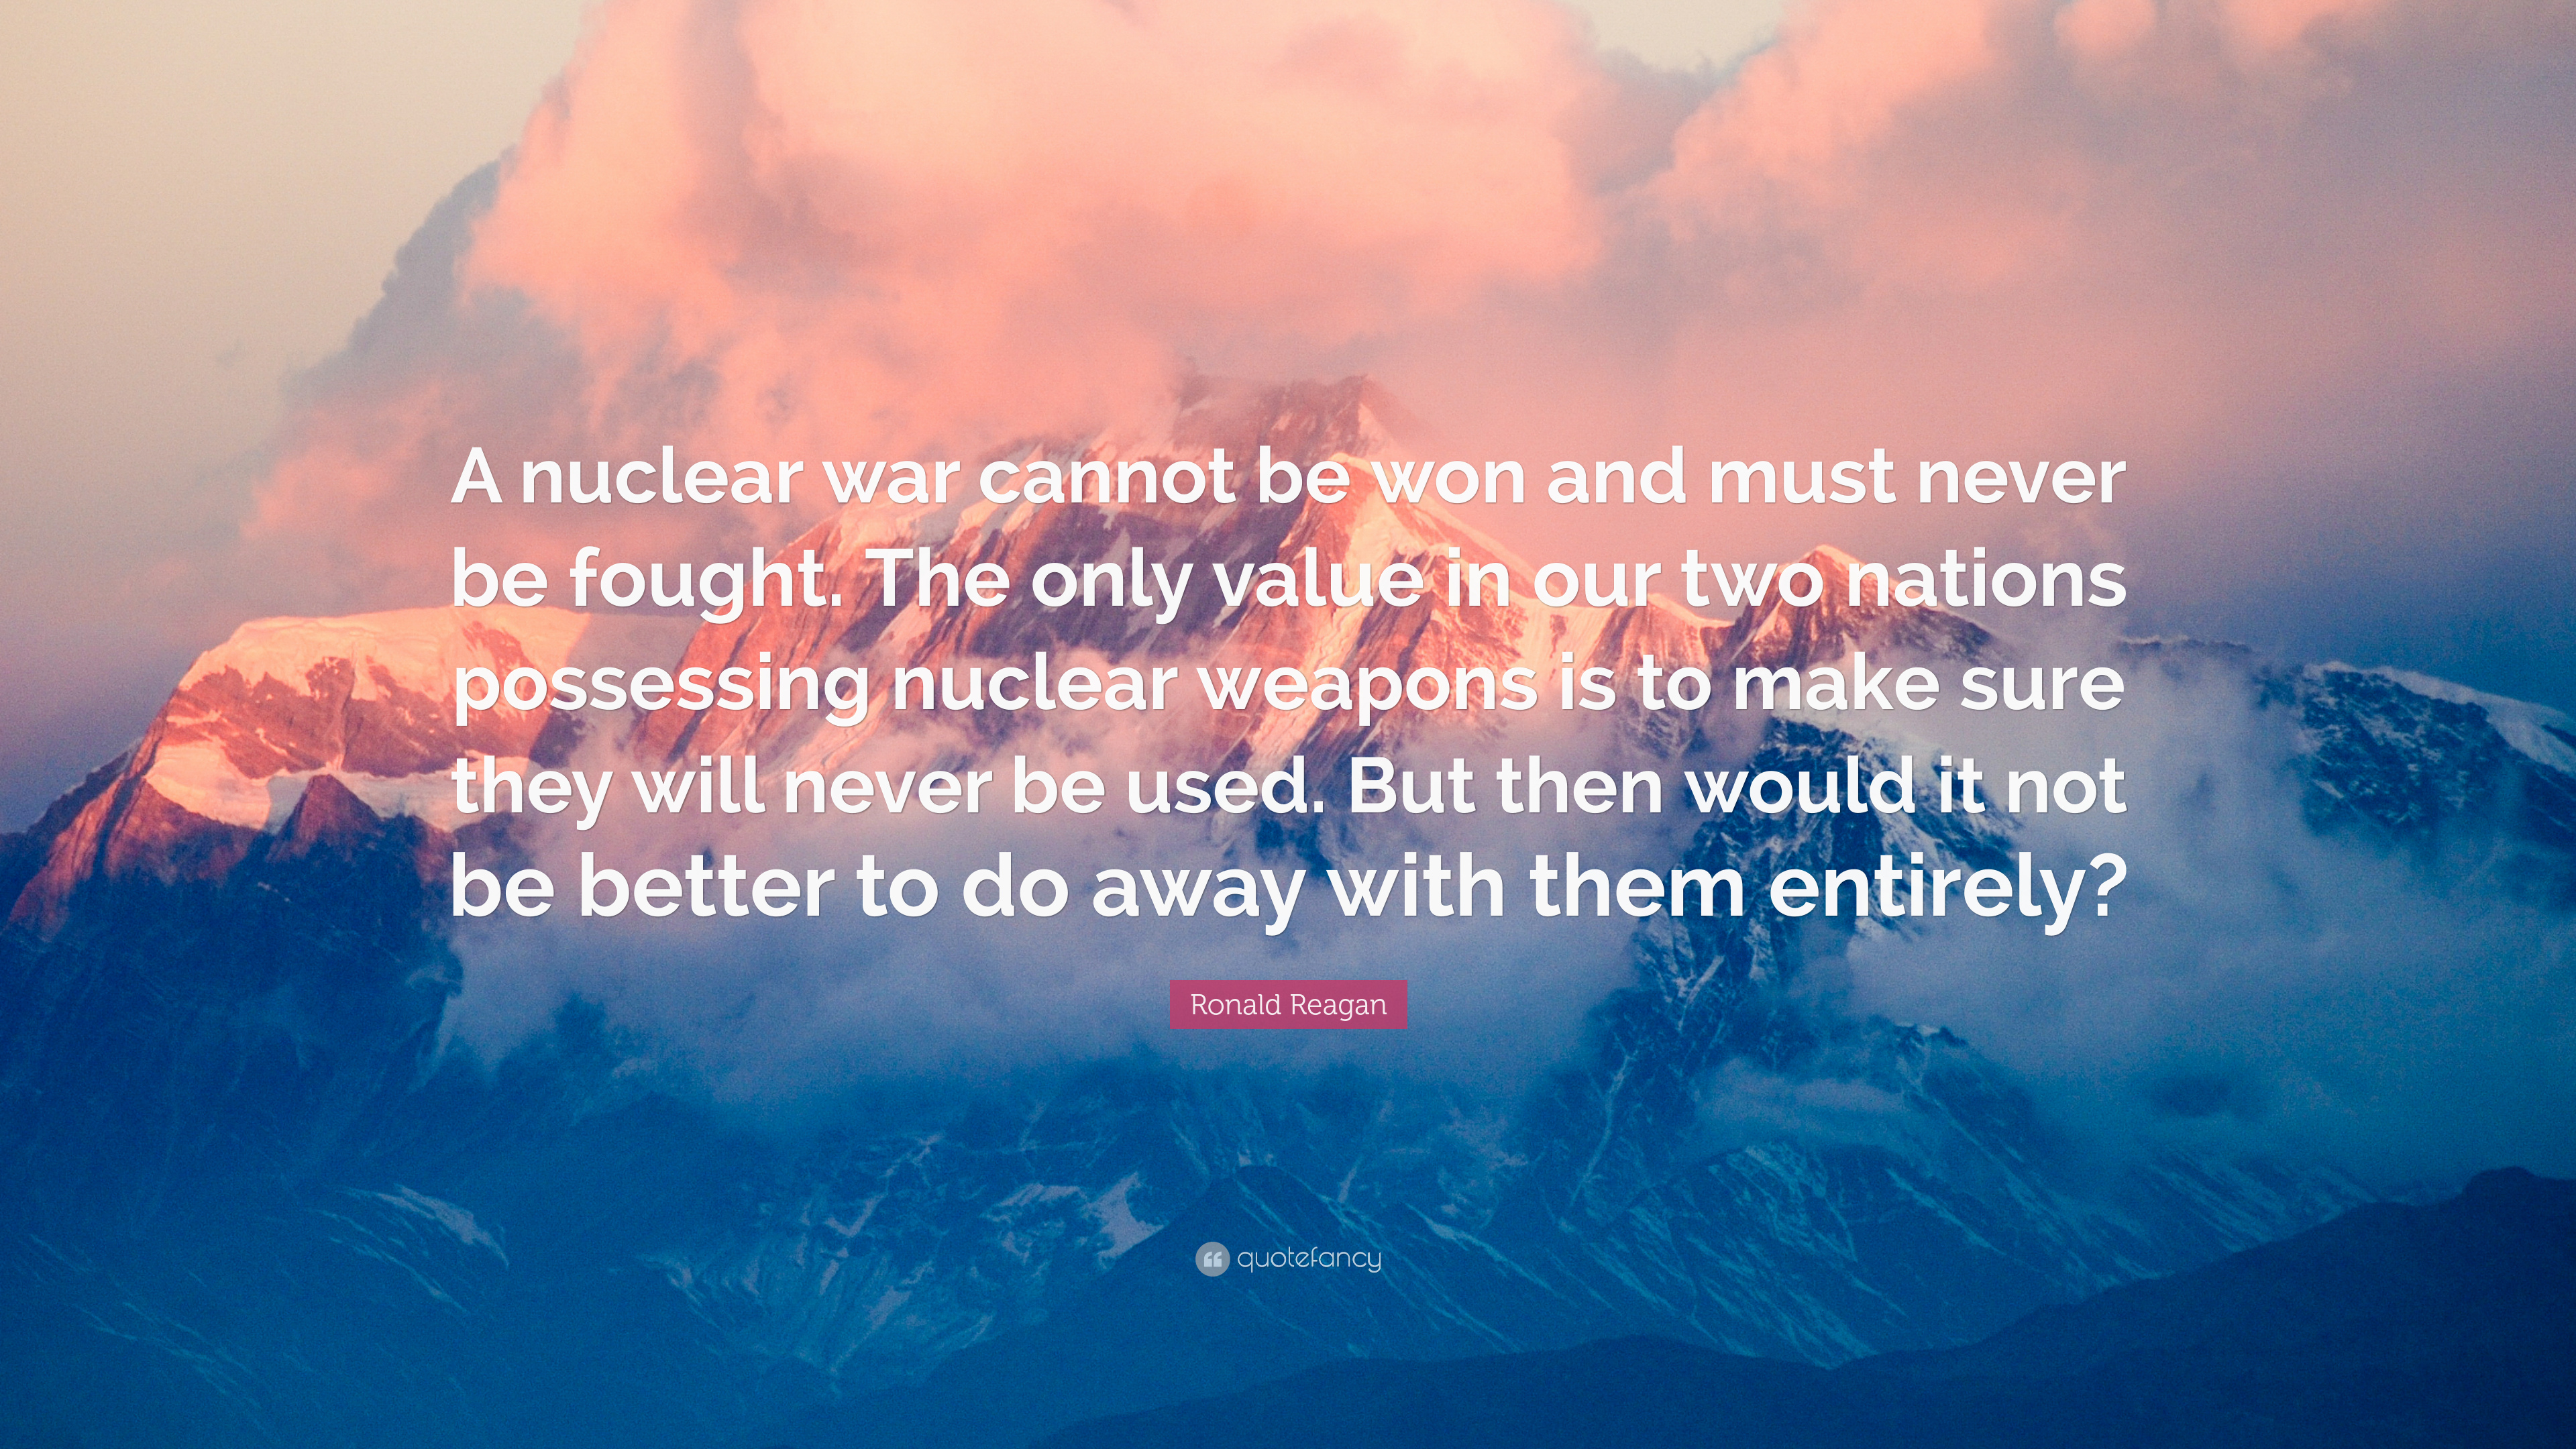 nuclear war cannot be won and should not be fought Reagan had a figurative conversion on the road to damascus regarding nuclear weapons and icbms following this crisis, discarding his preconceived notions of general soviet bad faith, leading him to come full circle and famously declare that nuclear war cannot be won and must not be fought.